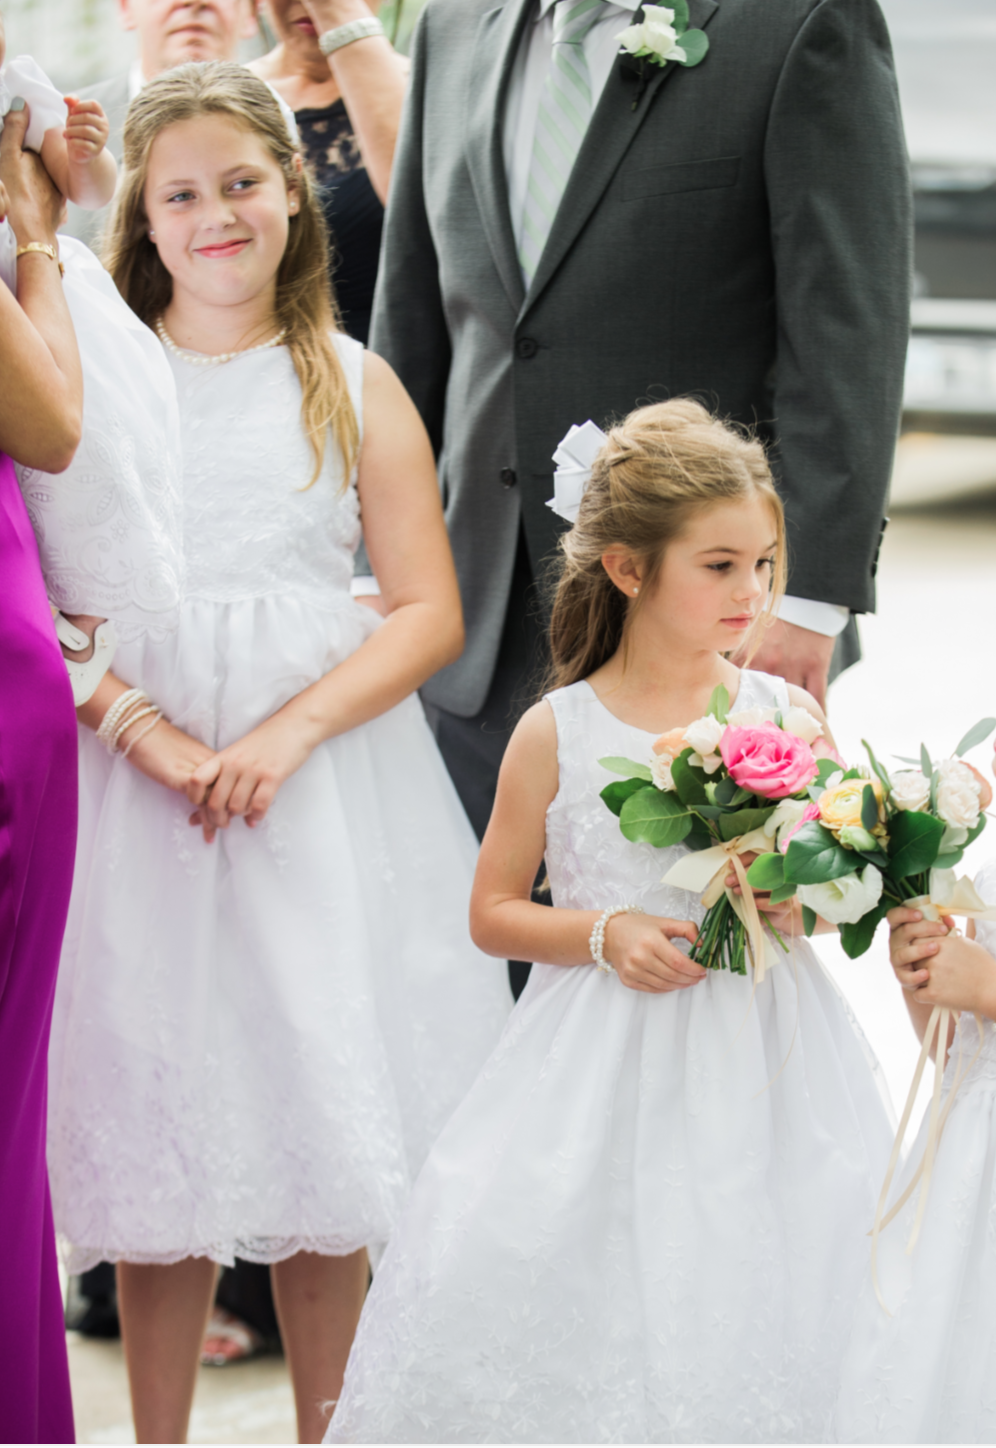 Flower girl getting ready to walk down the aisle.